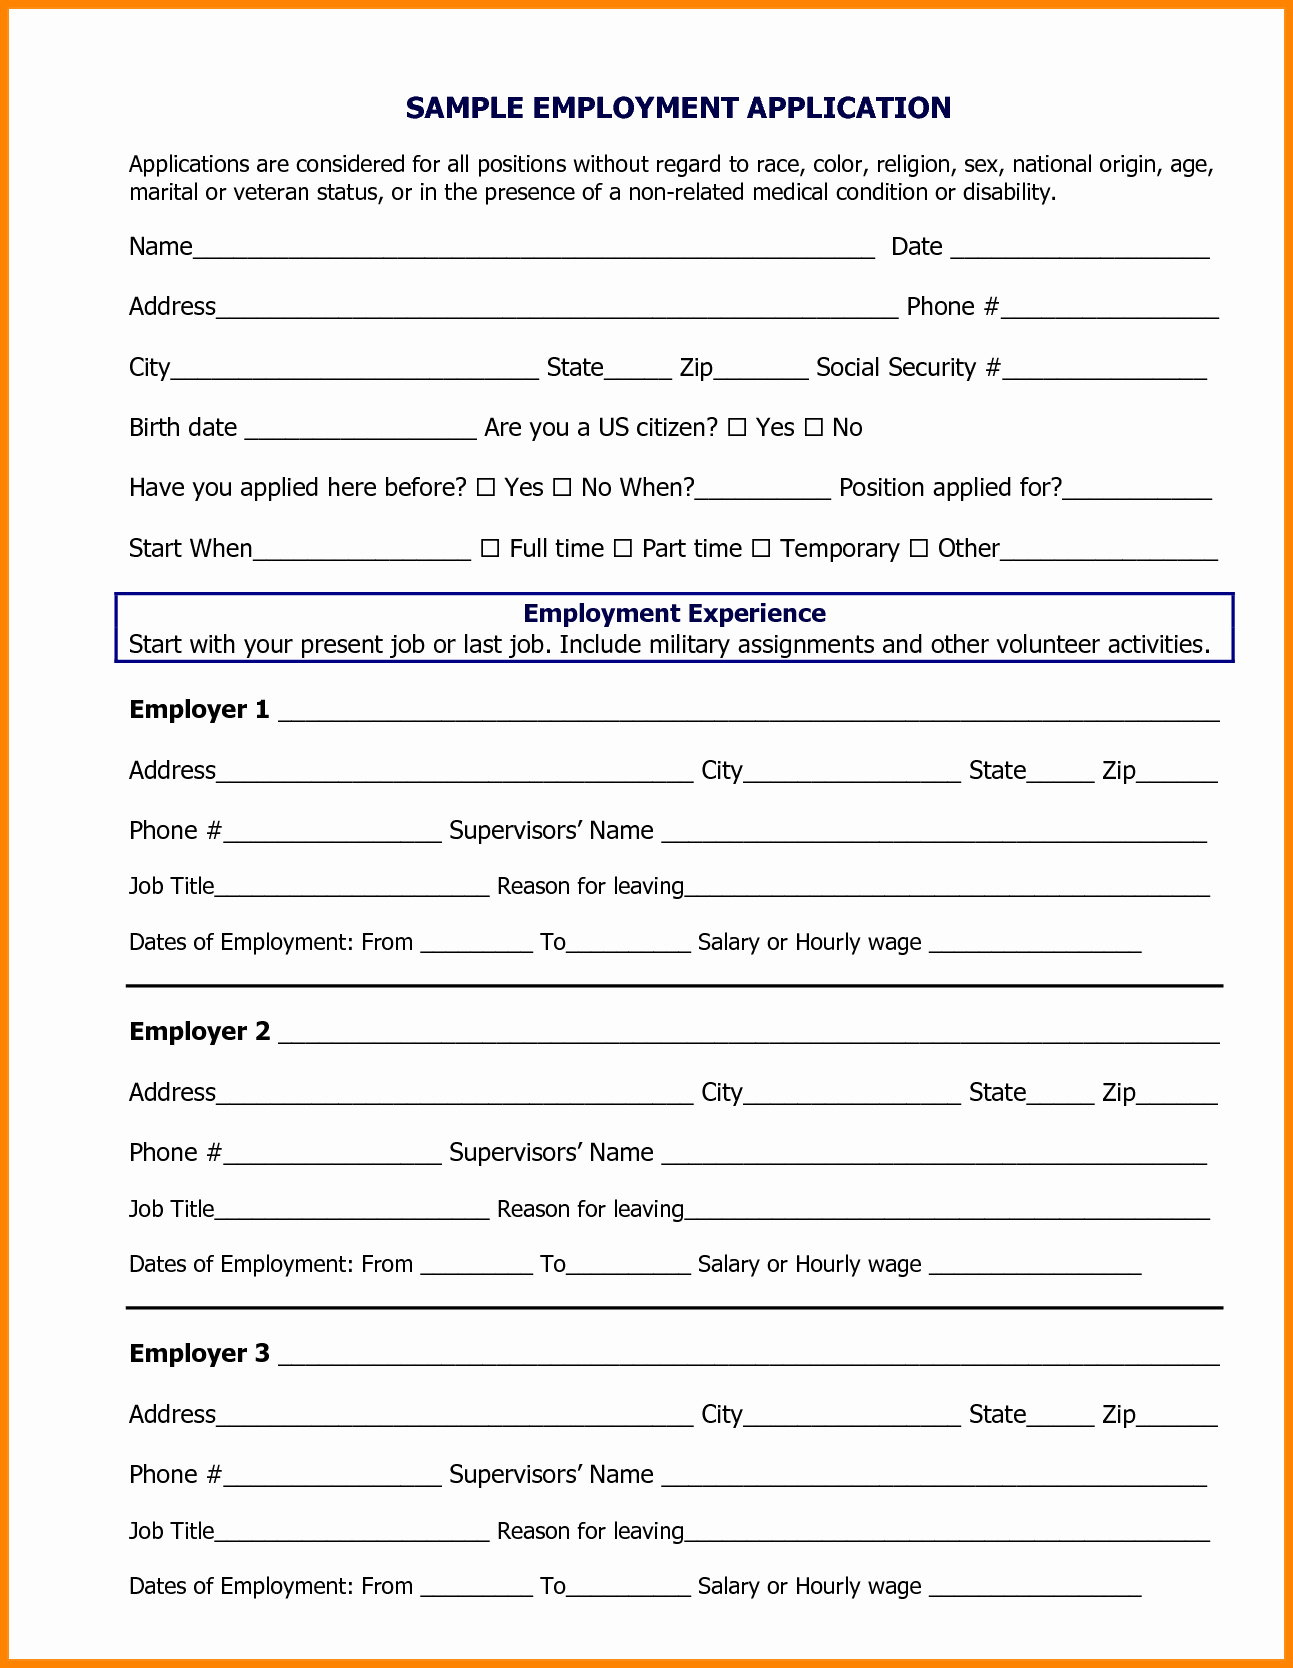 Job Application form Sample format Lovely 9 Sample Employment Application